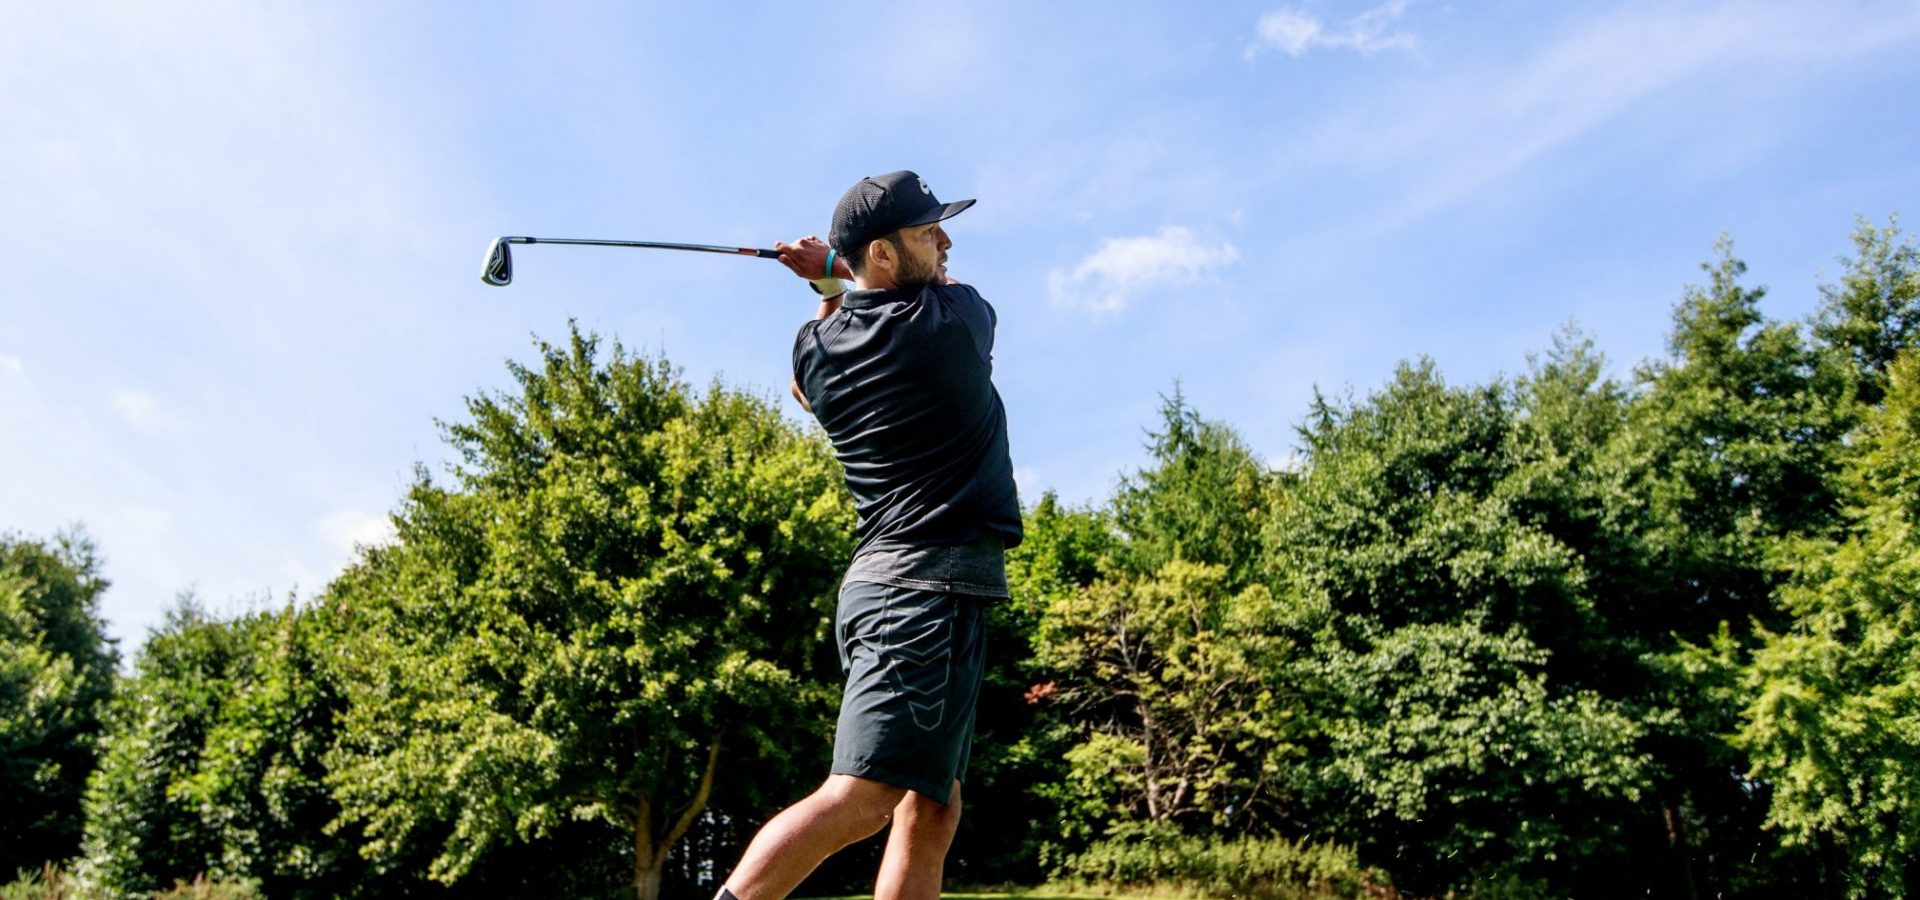 SOME SCORCHING PLAY AT ANNUAL GOLF CLASSIC